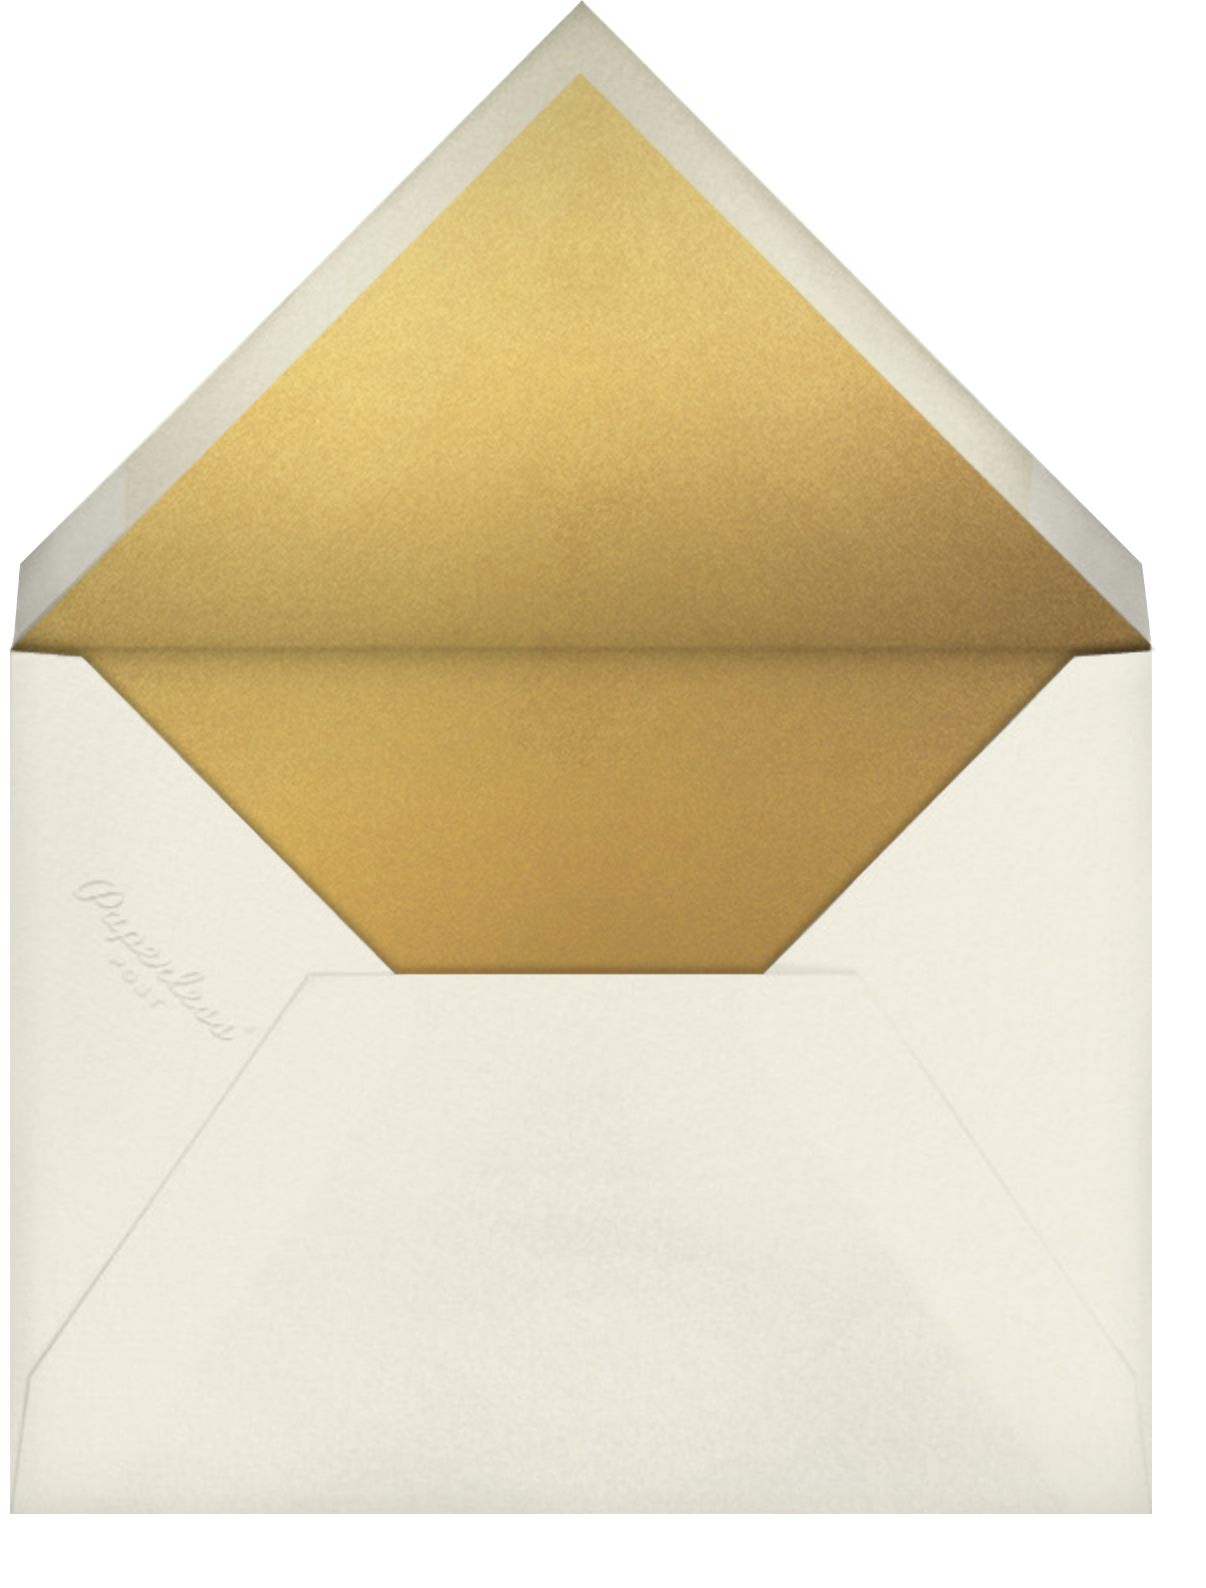 Big Things - Paperless Post - Graduation party - envelope back